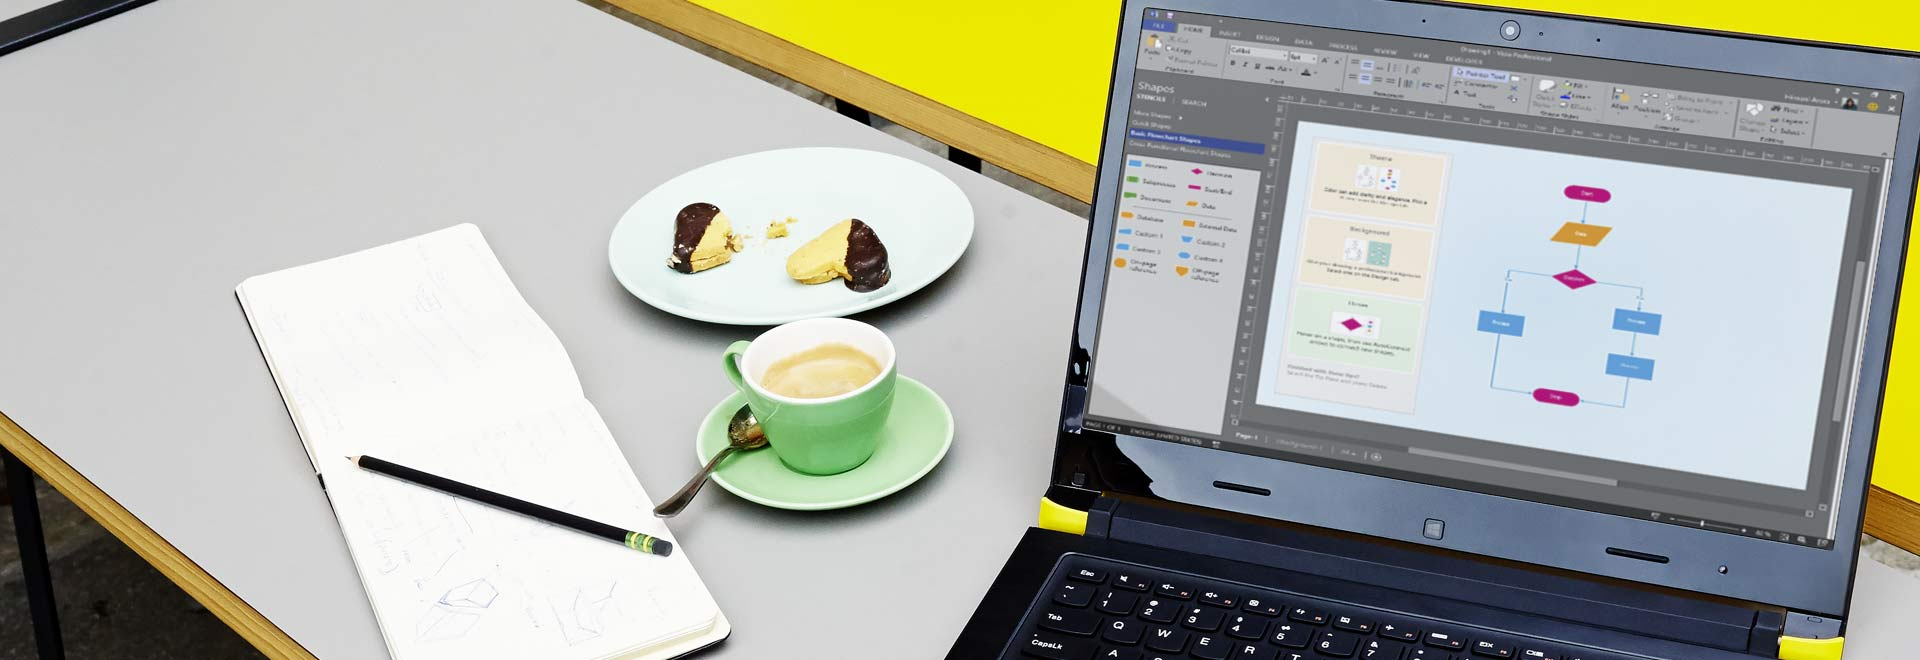 Close-up of a laptop on a table, showing a Visio diagram with editing ribbon and pane